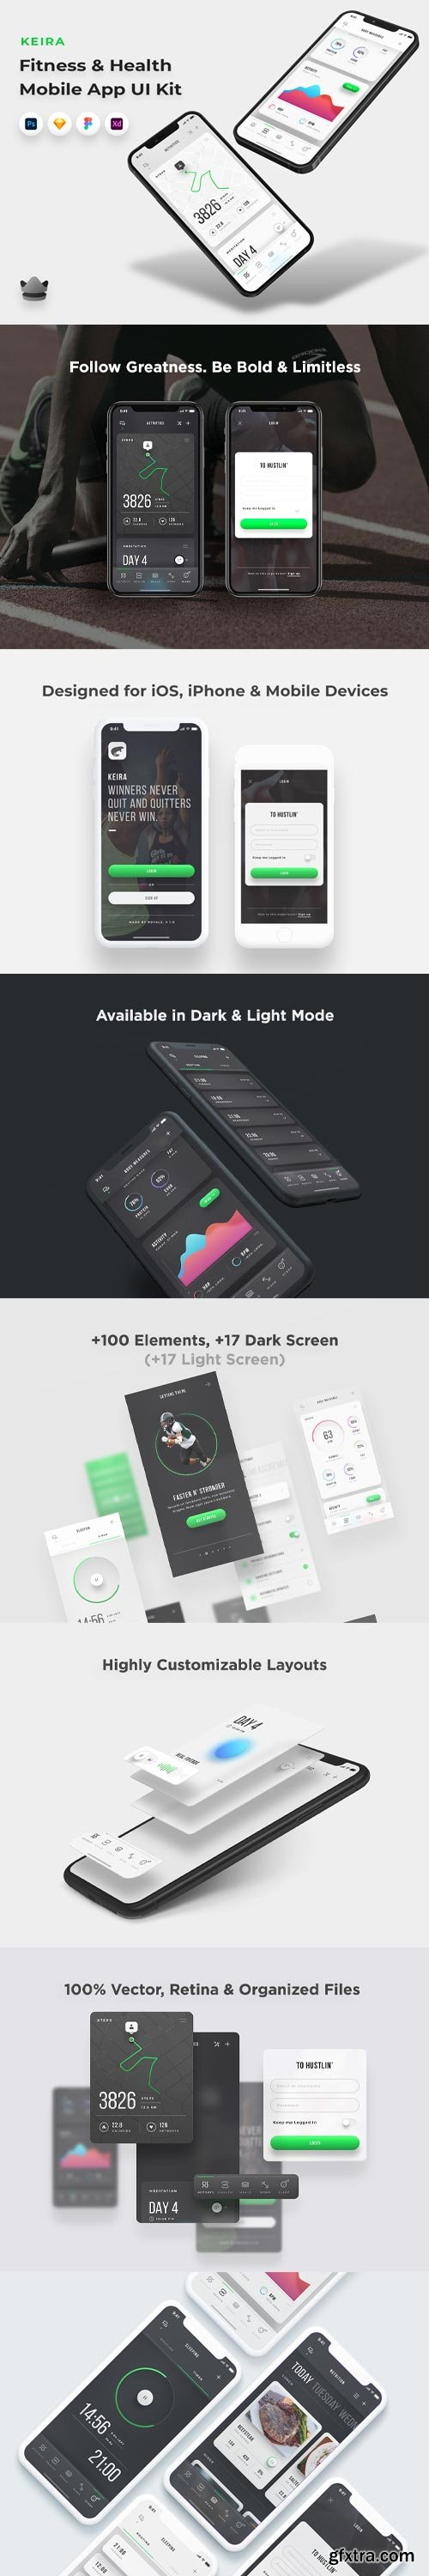 YellowImages - Keira - Fitness & Health App UI Kit - 83603